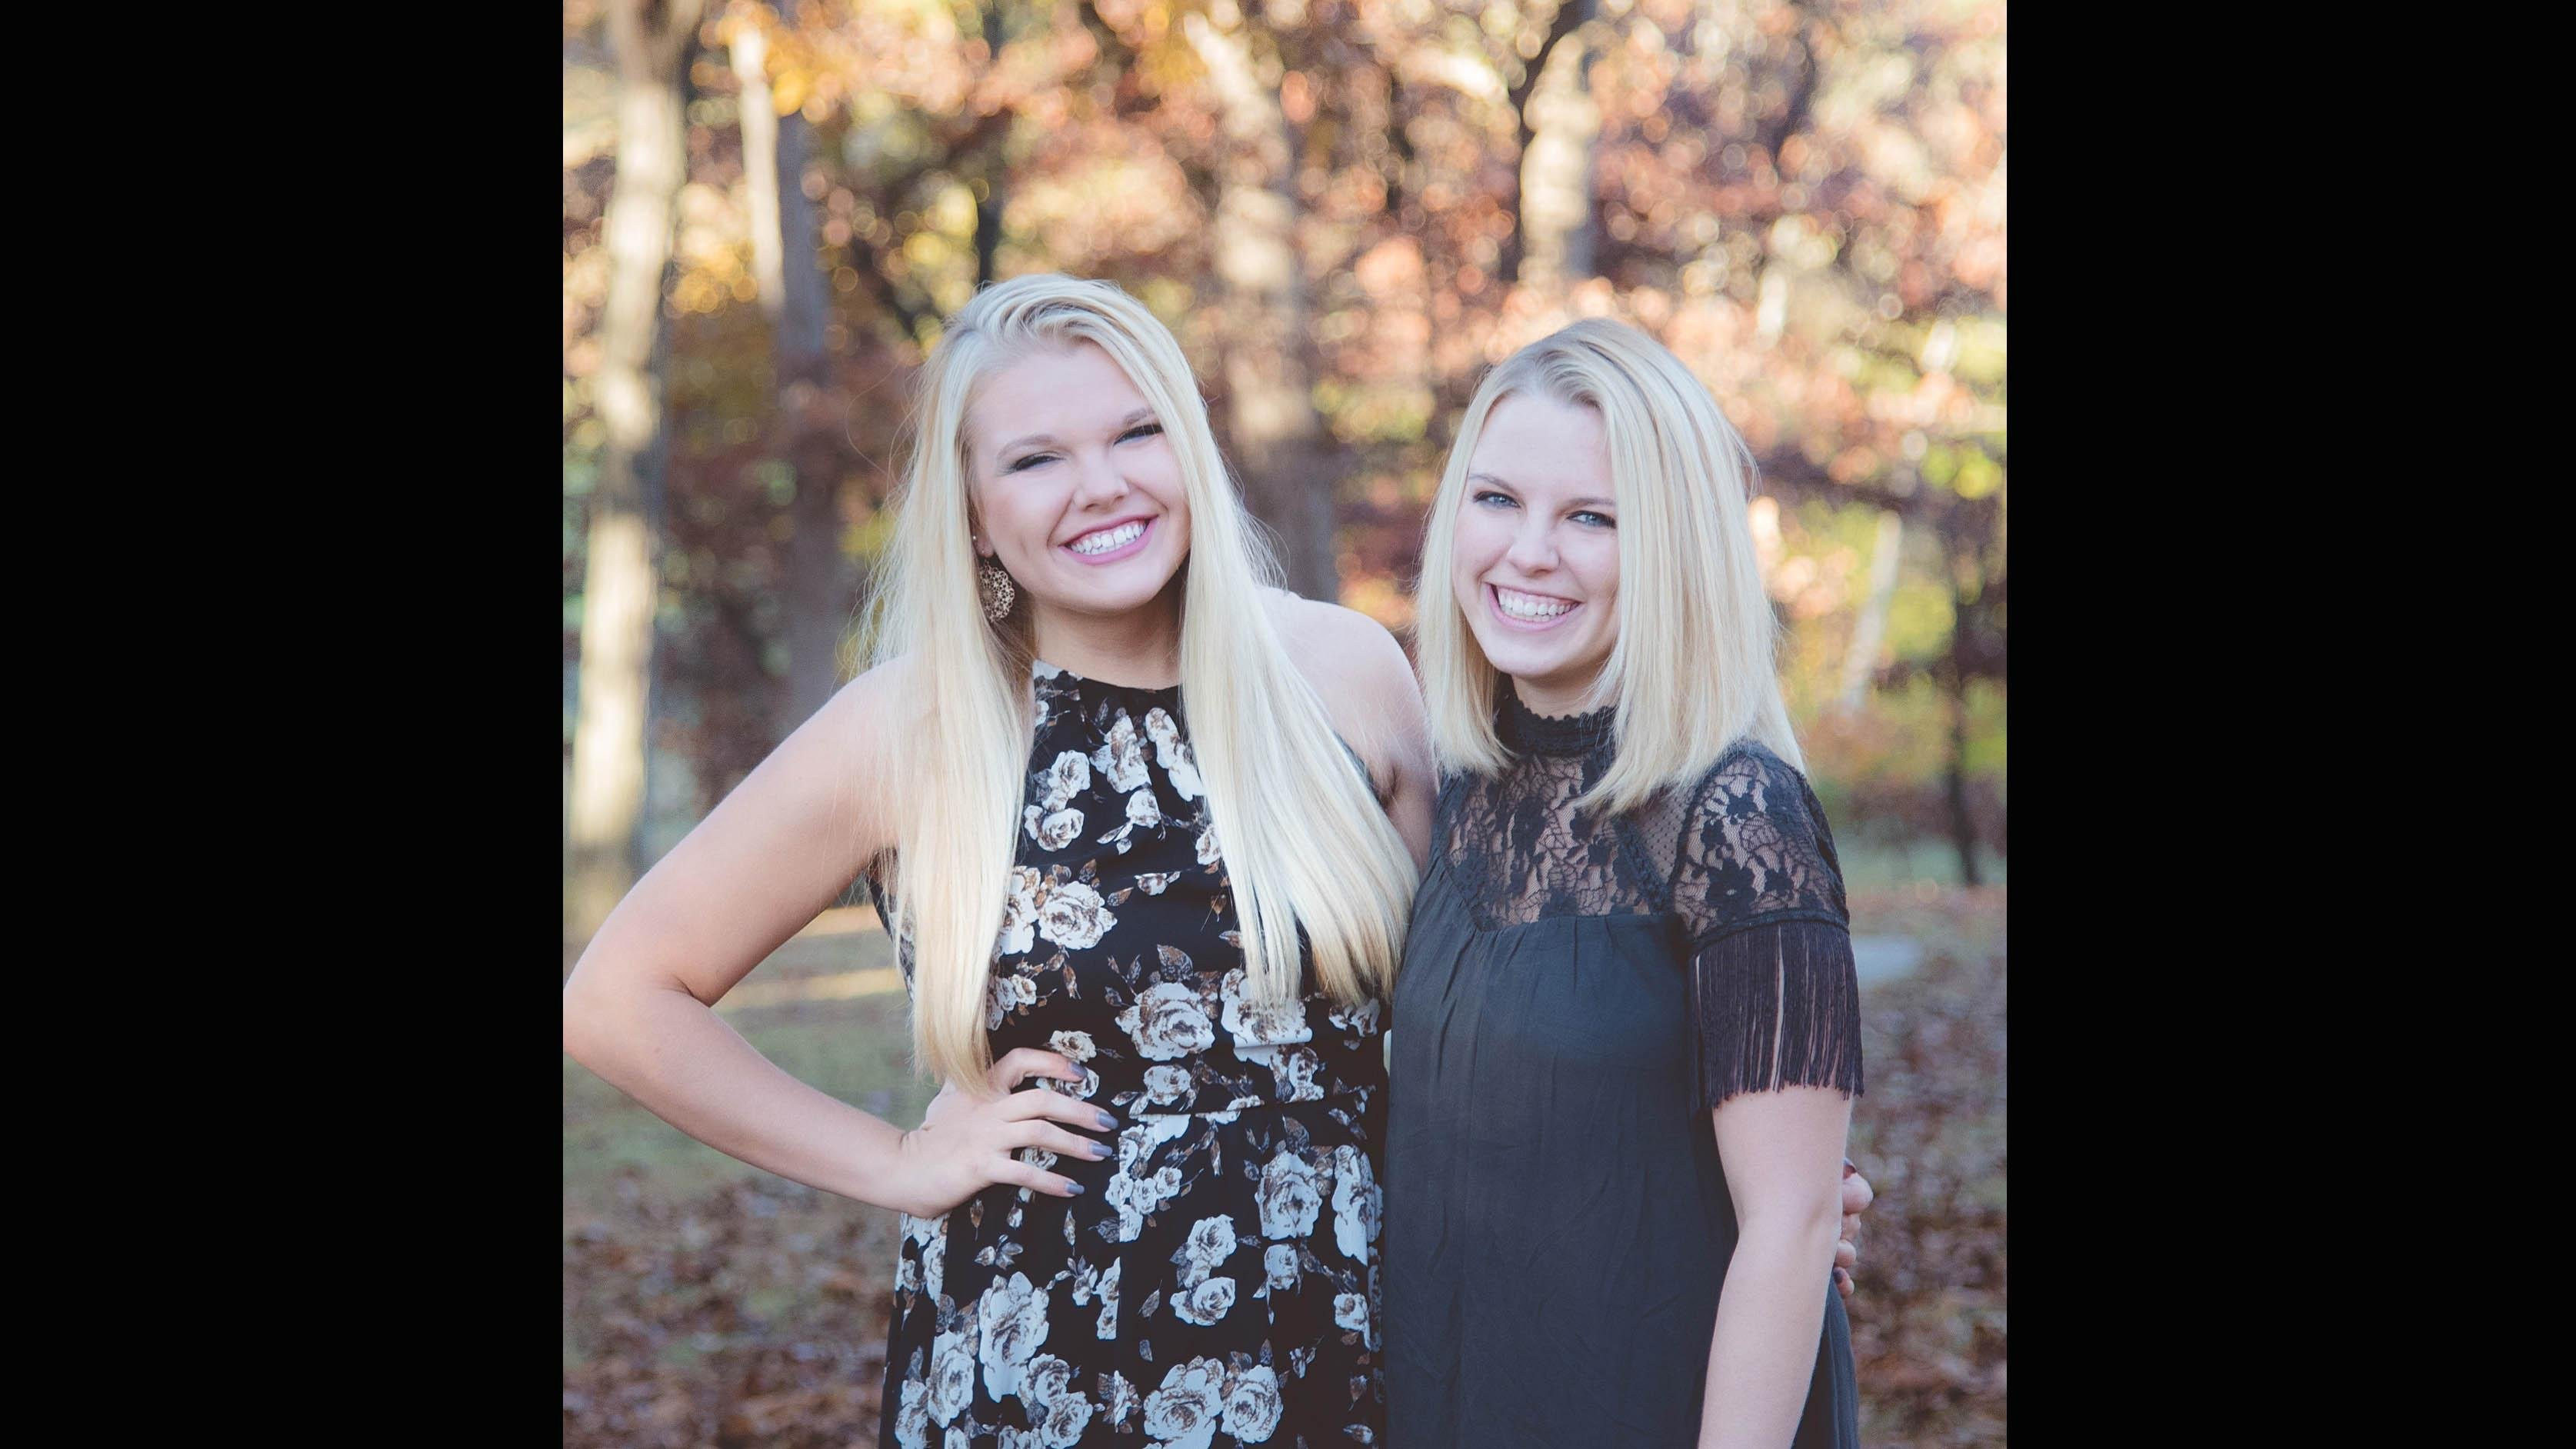 Sydney (left) and Hailey Kurtz plan to open a zero-waste marketplace in Chicago by spring 2020. (Courtesy of Hailey Kurtz)